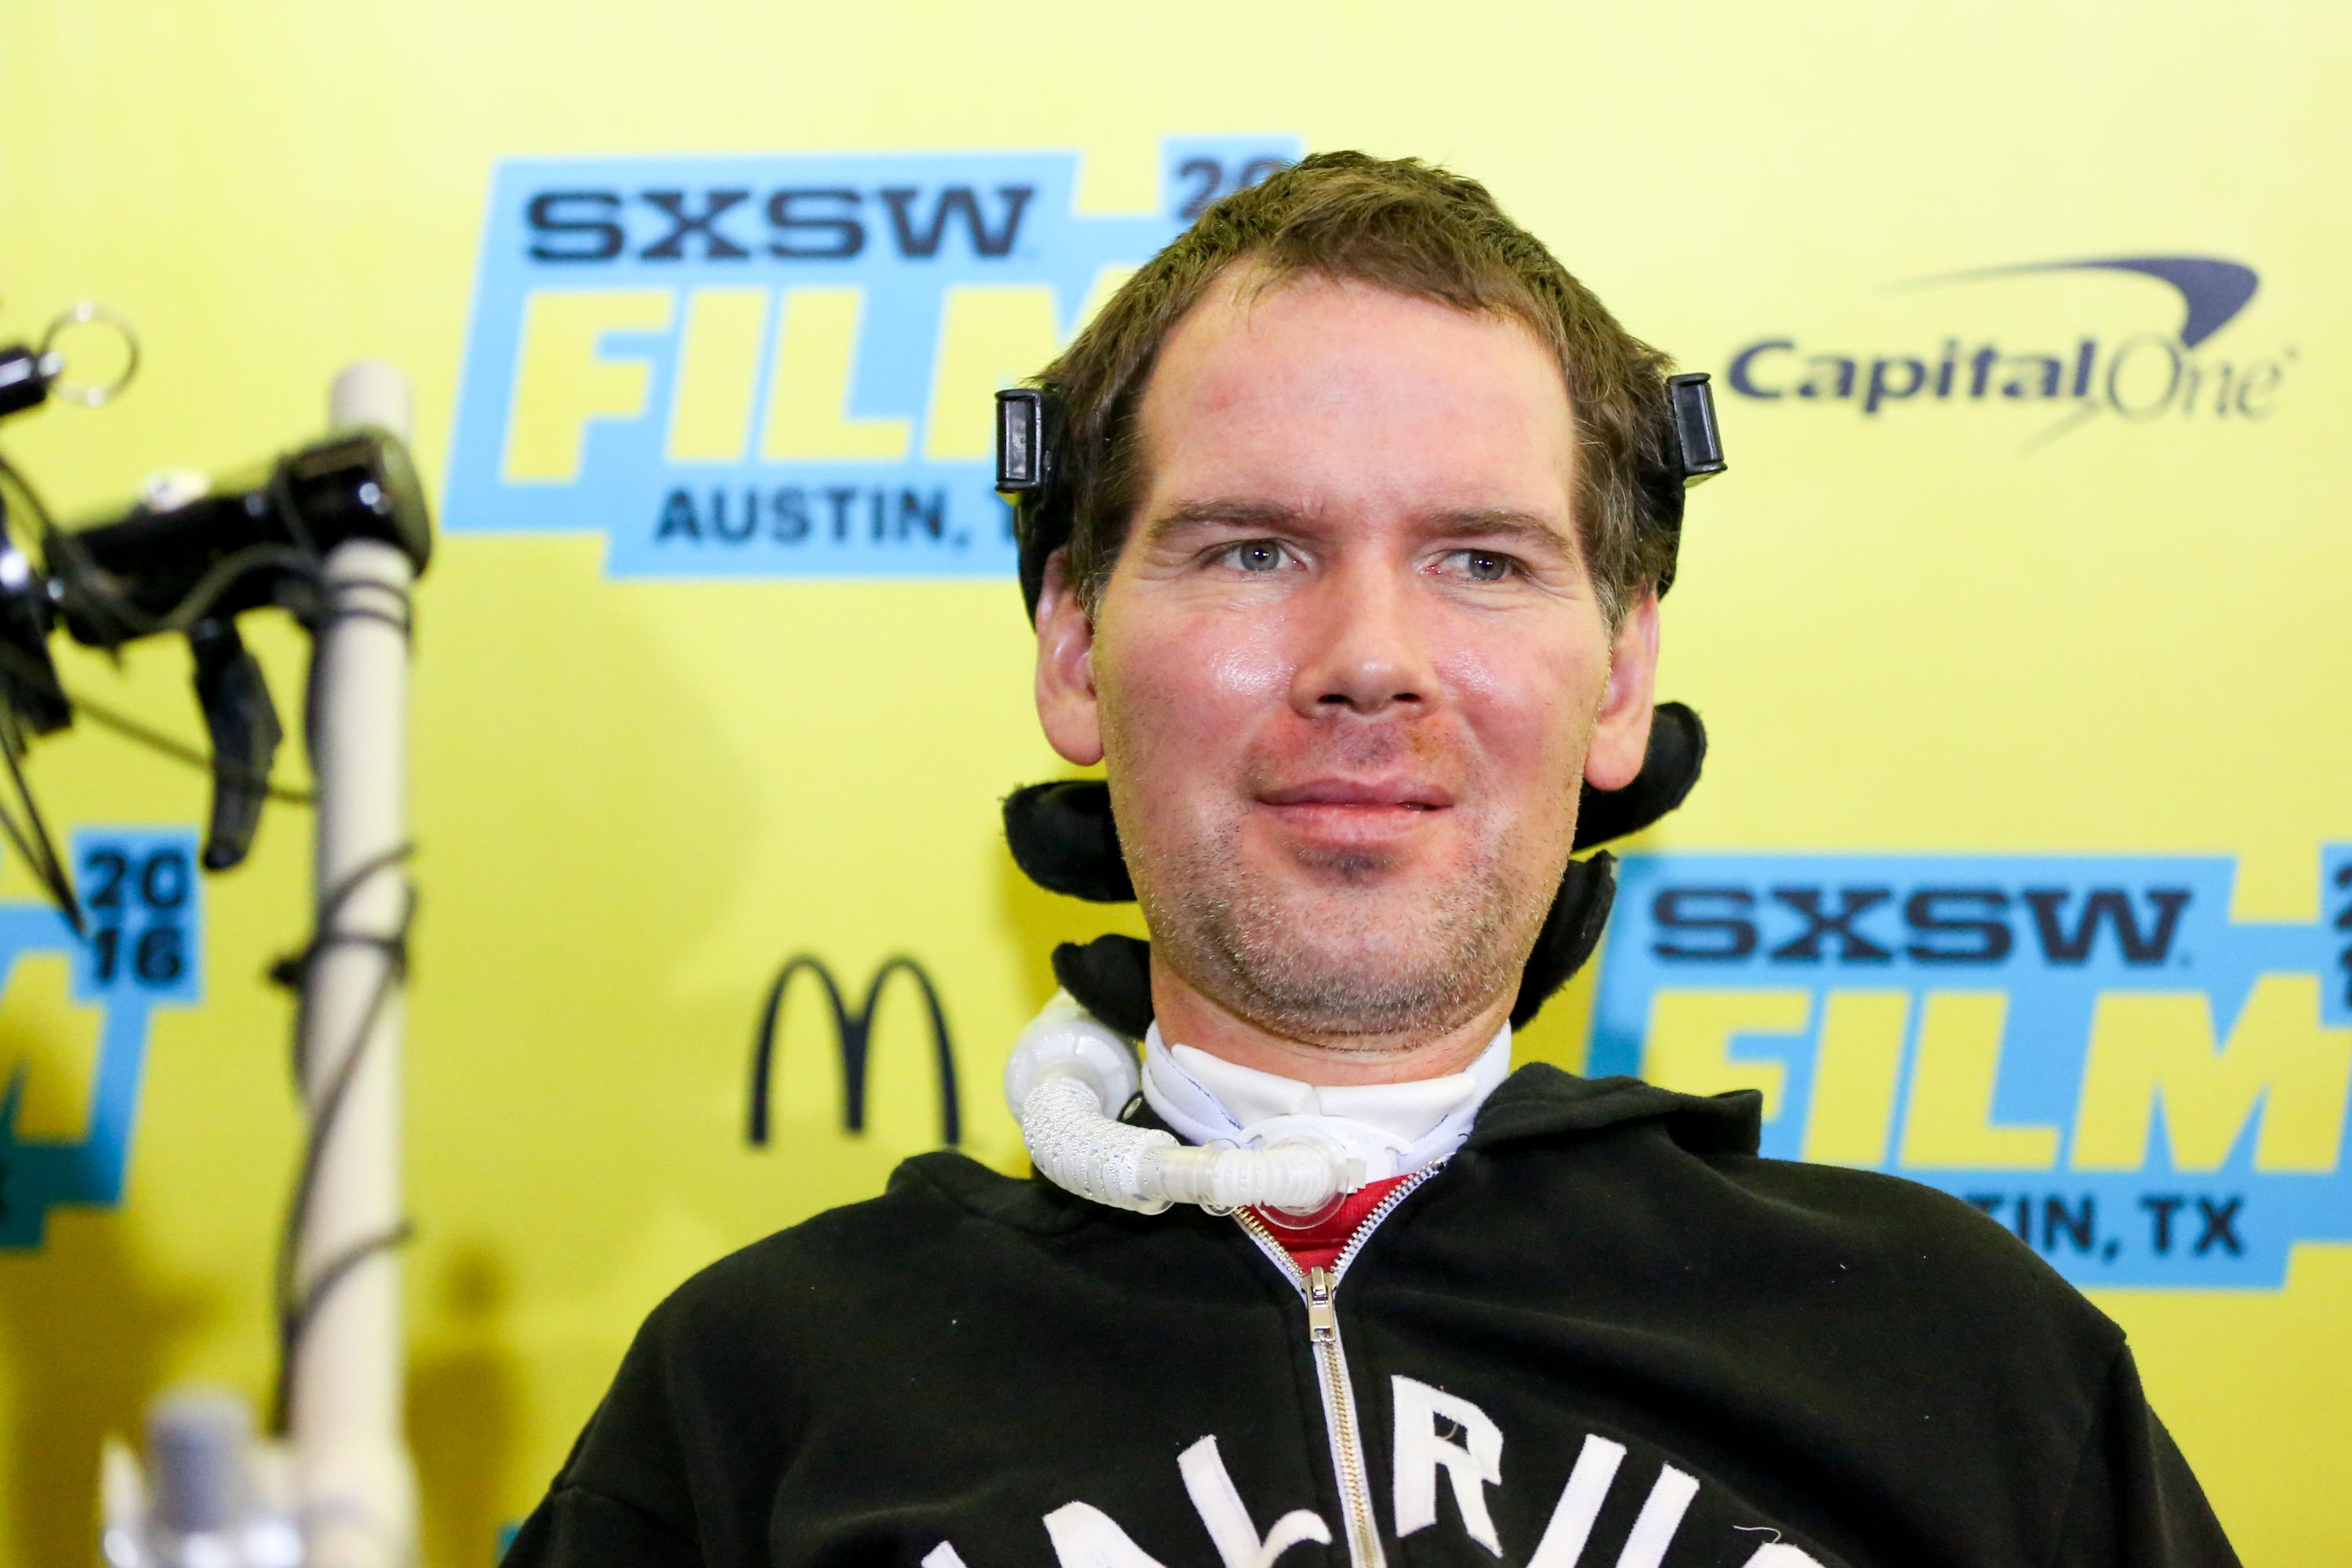 Steve Gleason receives Congressional Gold Medal Wednesday